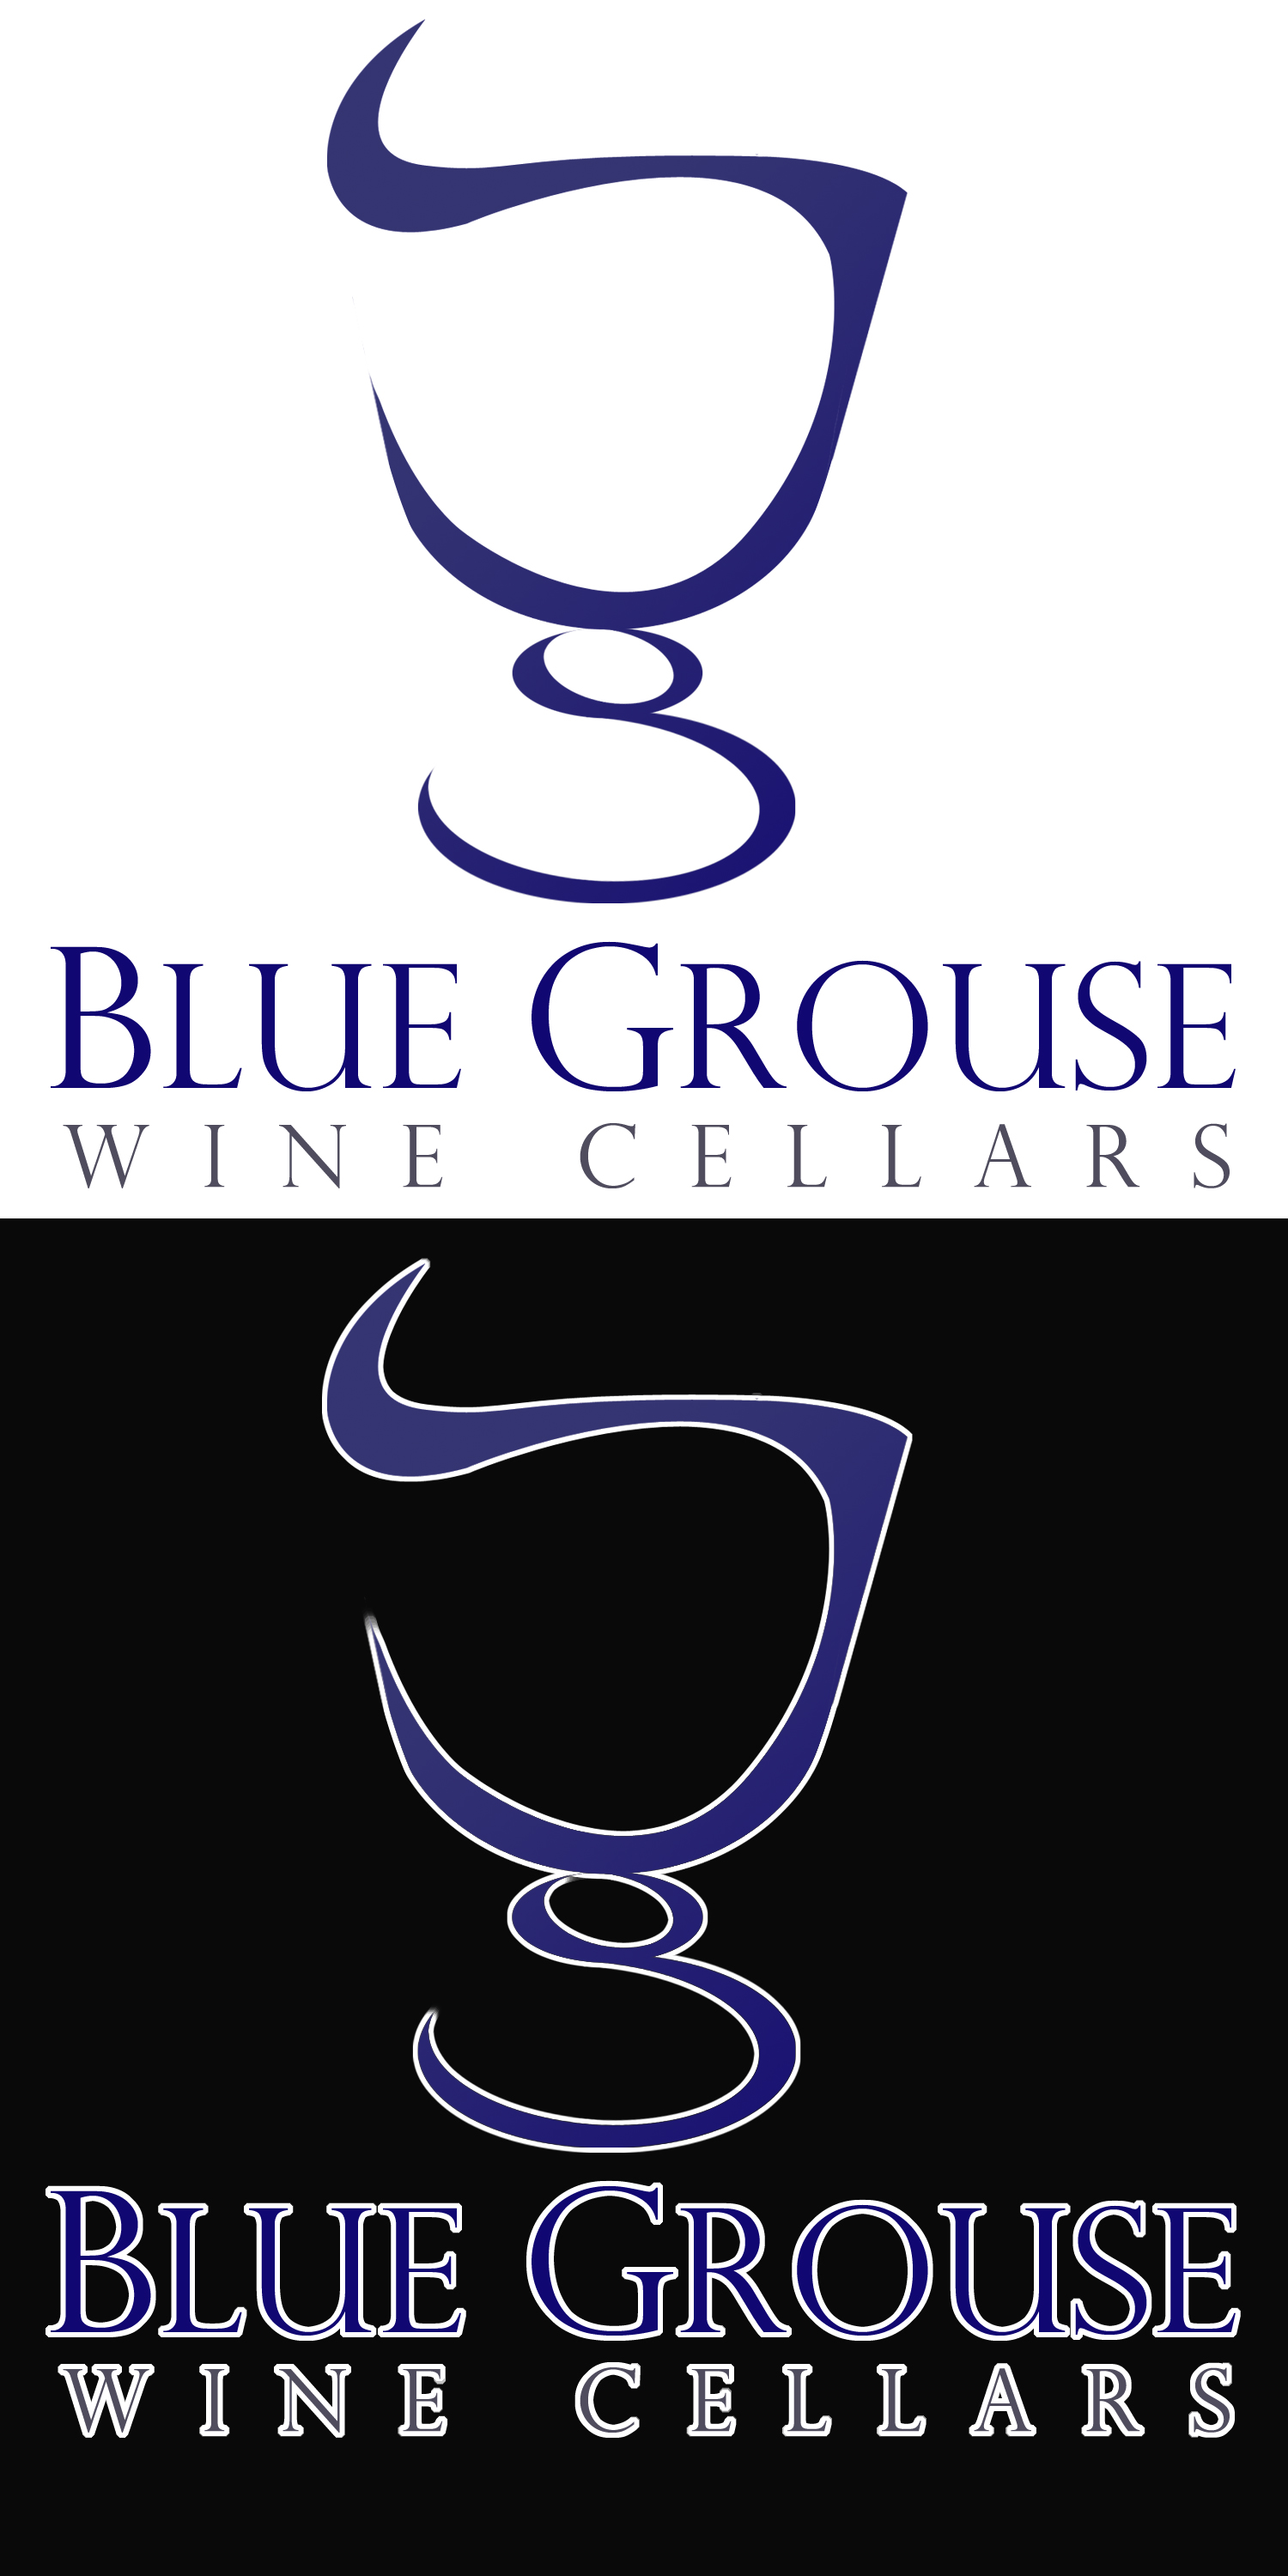 Logo Design by Private User - Entry No. 241 in the Logo Design Contest Creative Logo Design for Blue Grouse Wine Cellars.